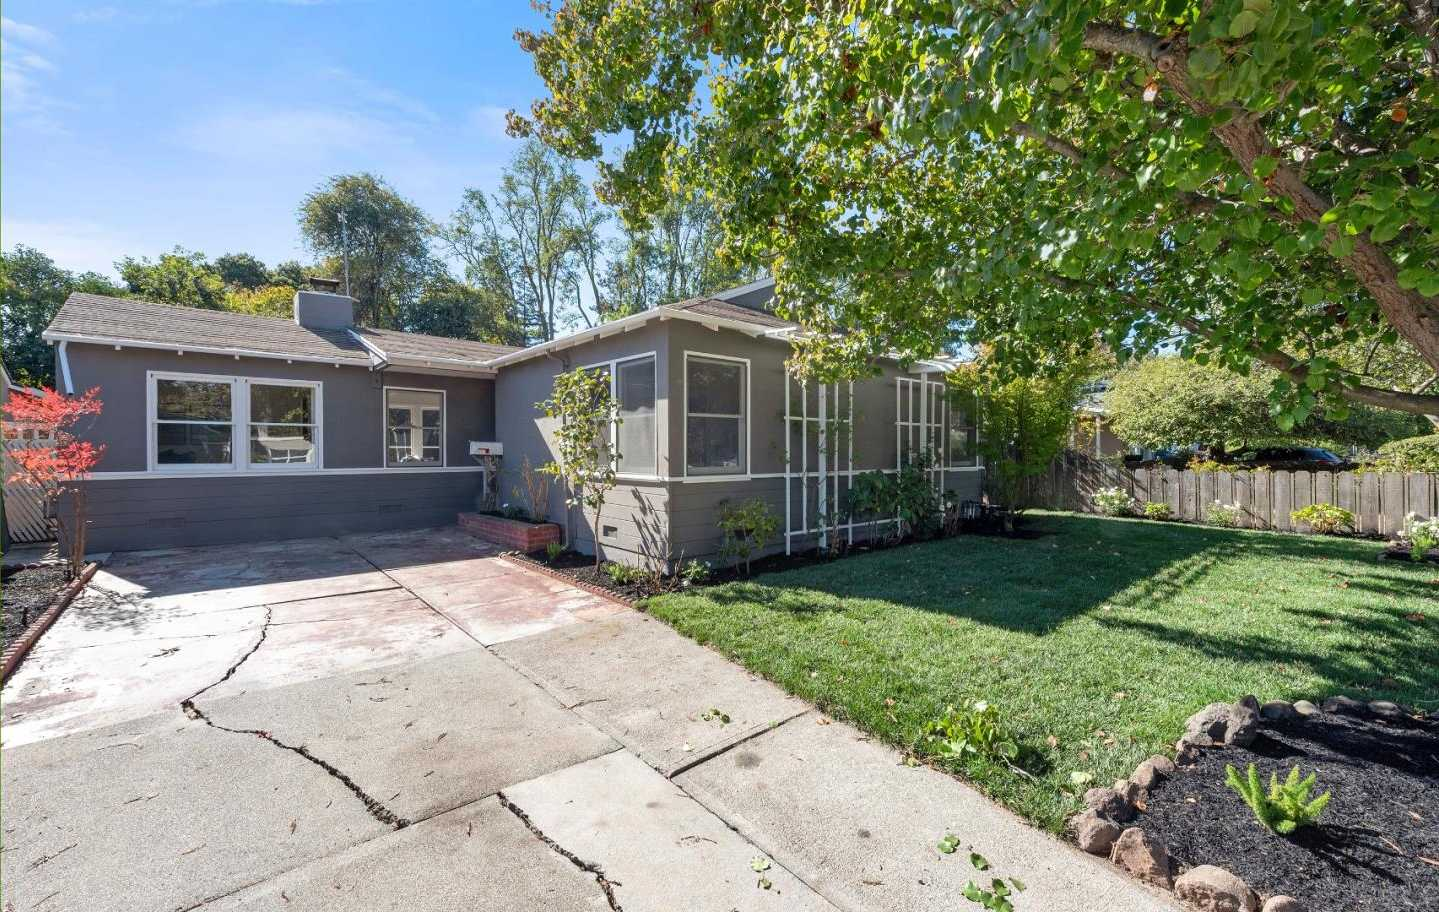 $1,489,000 - 3Br/1Ba -  for Sale in Menlo Park